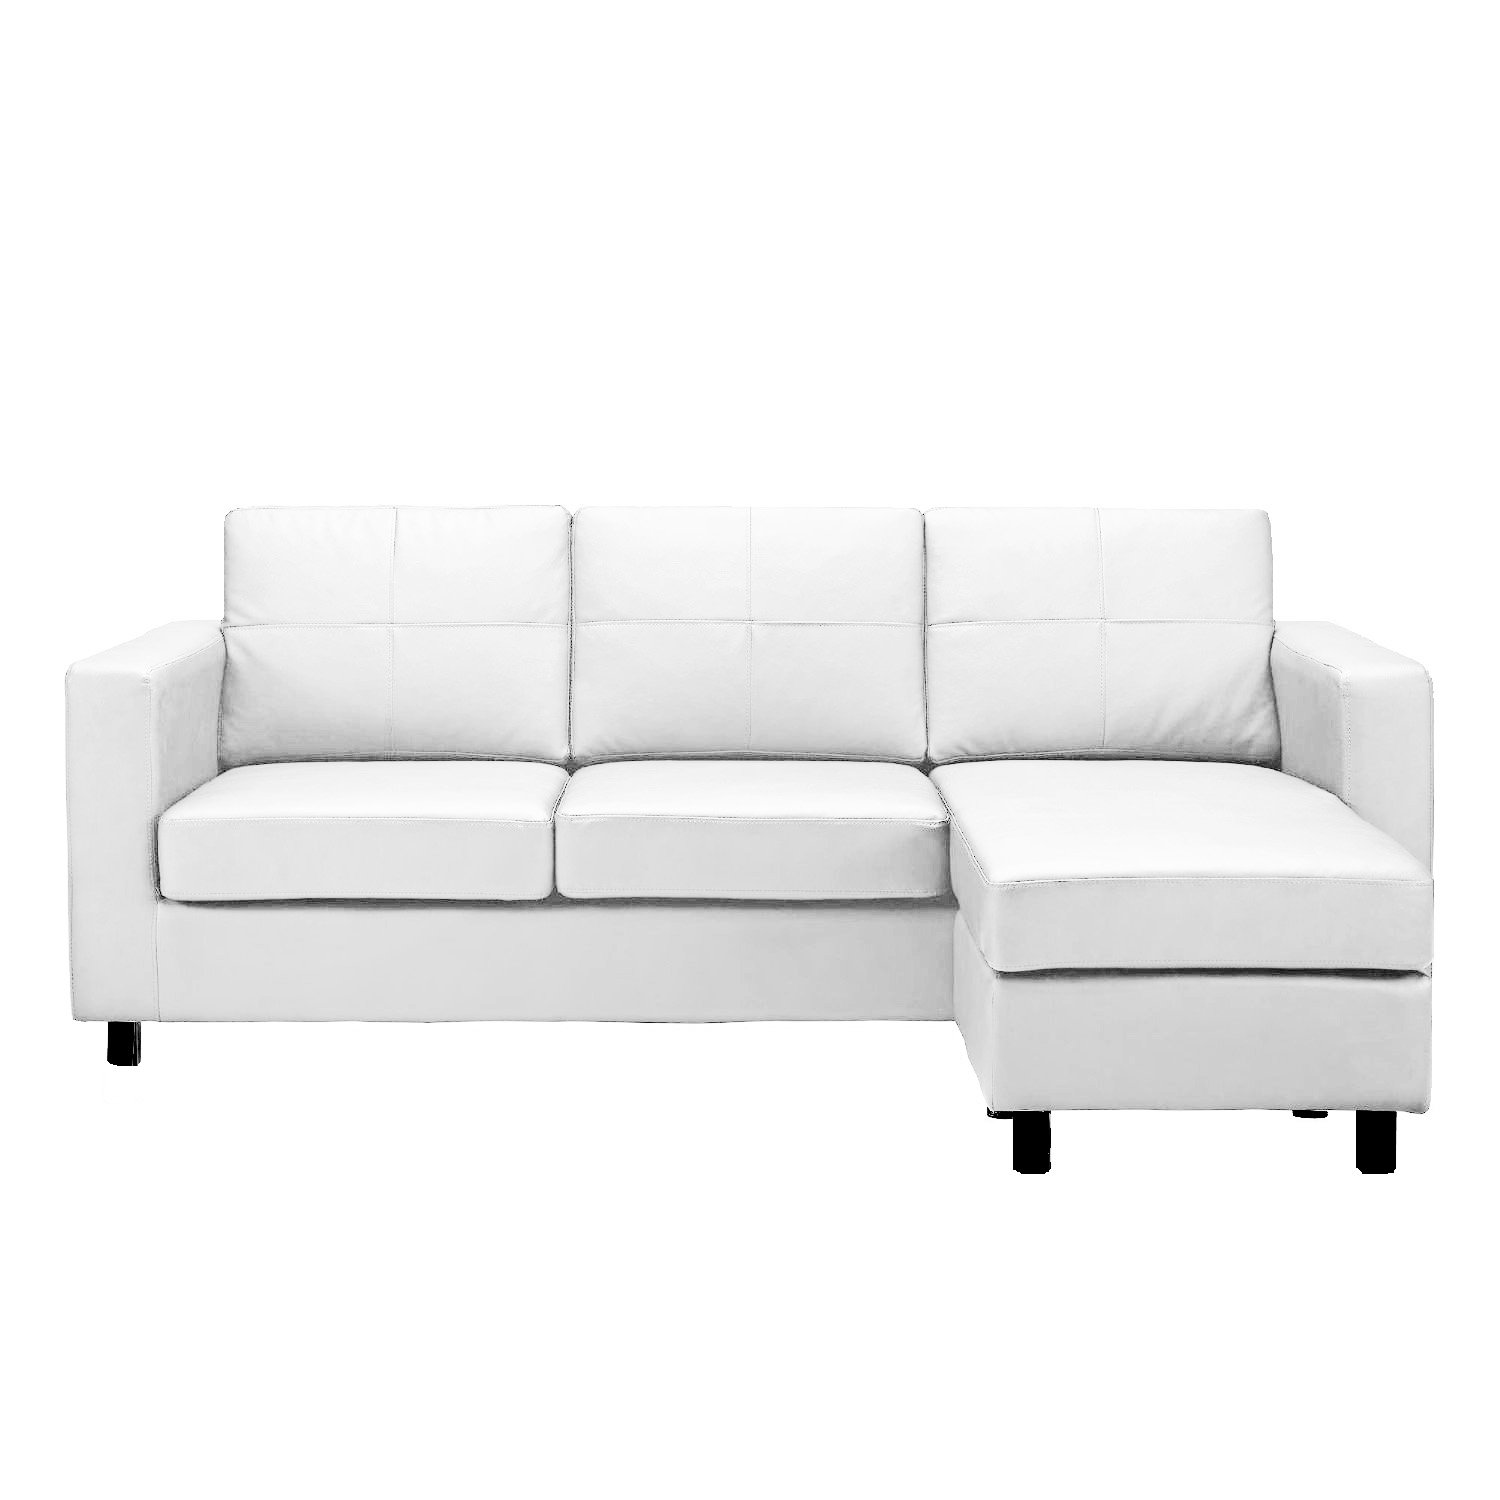 Modern Bonded Leather Sectional Sofa - Small Space Configurable Couch - Colors Black - White (White)